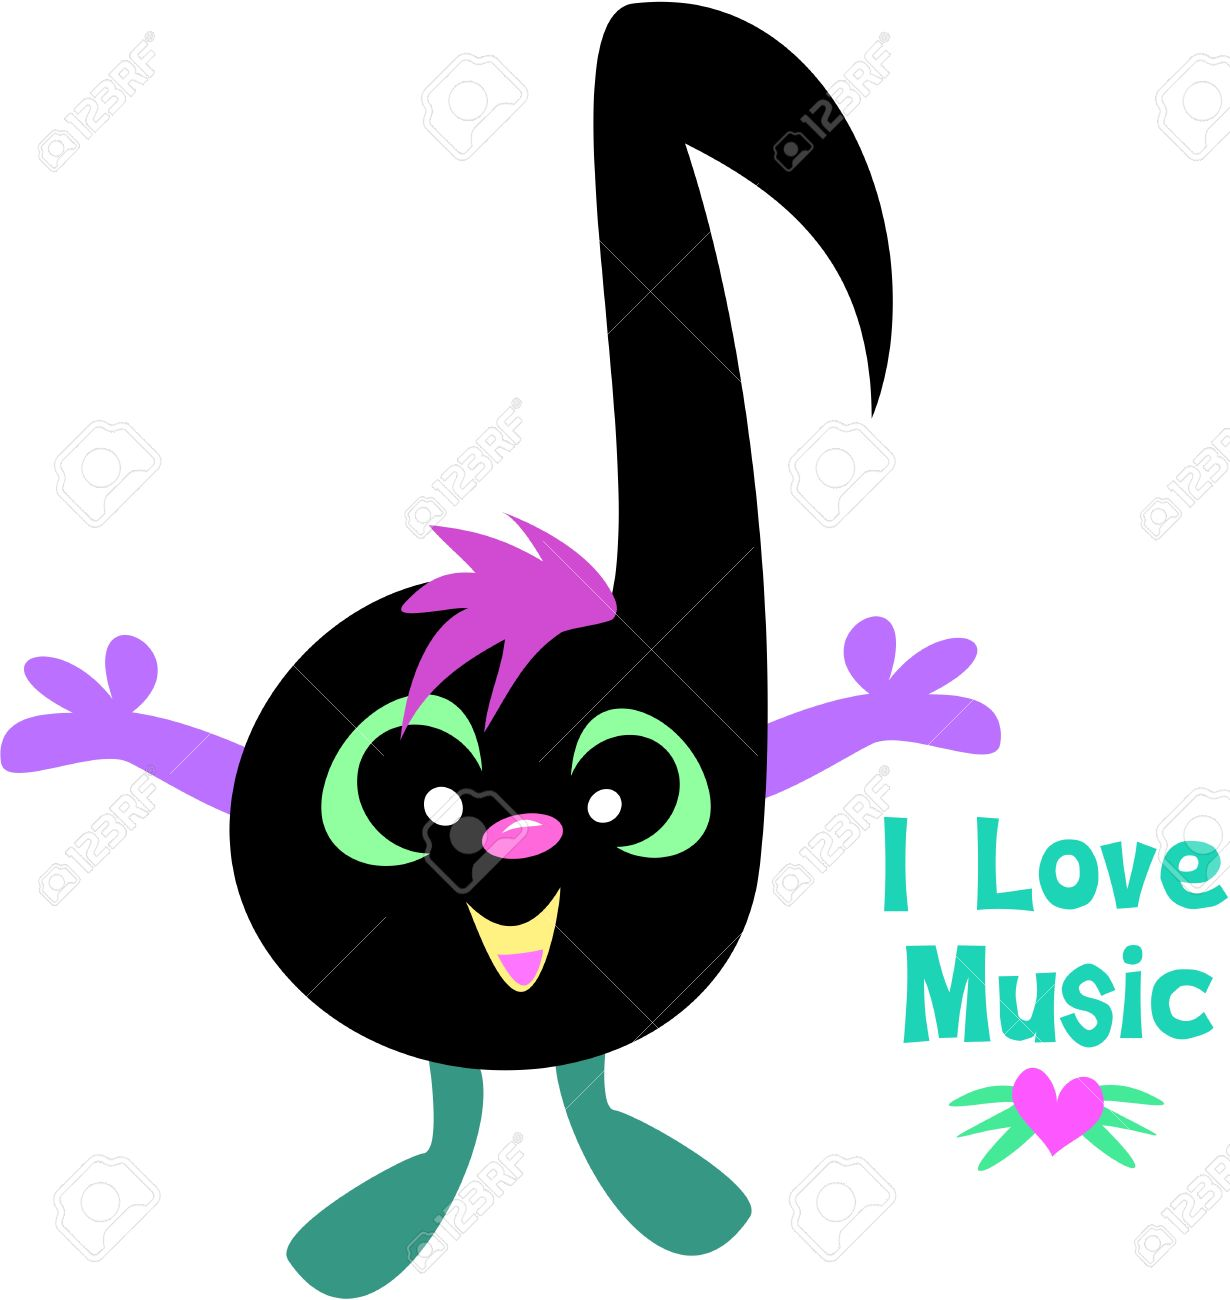 music note saying i love music royalty free cliparts vectors and rh 123rf com Music Note Clip Art Music Notes